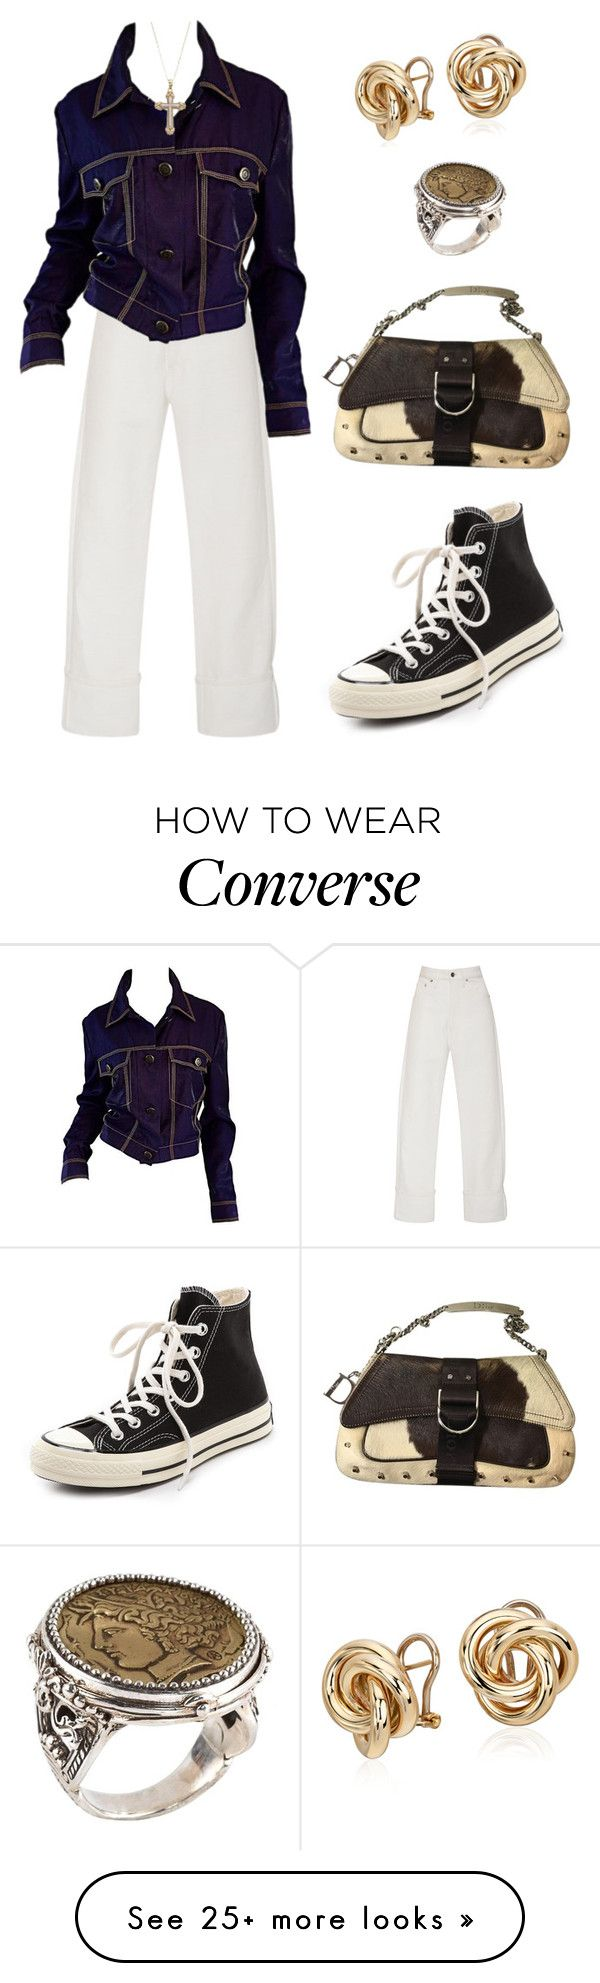 """Untitled #839"" by lucyshenton on Polyvore featuring Adam Selman, Blue Nile, Christian Dior, Konstantino and Converse"